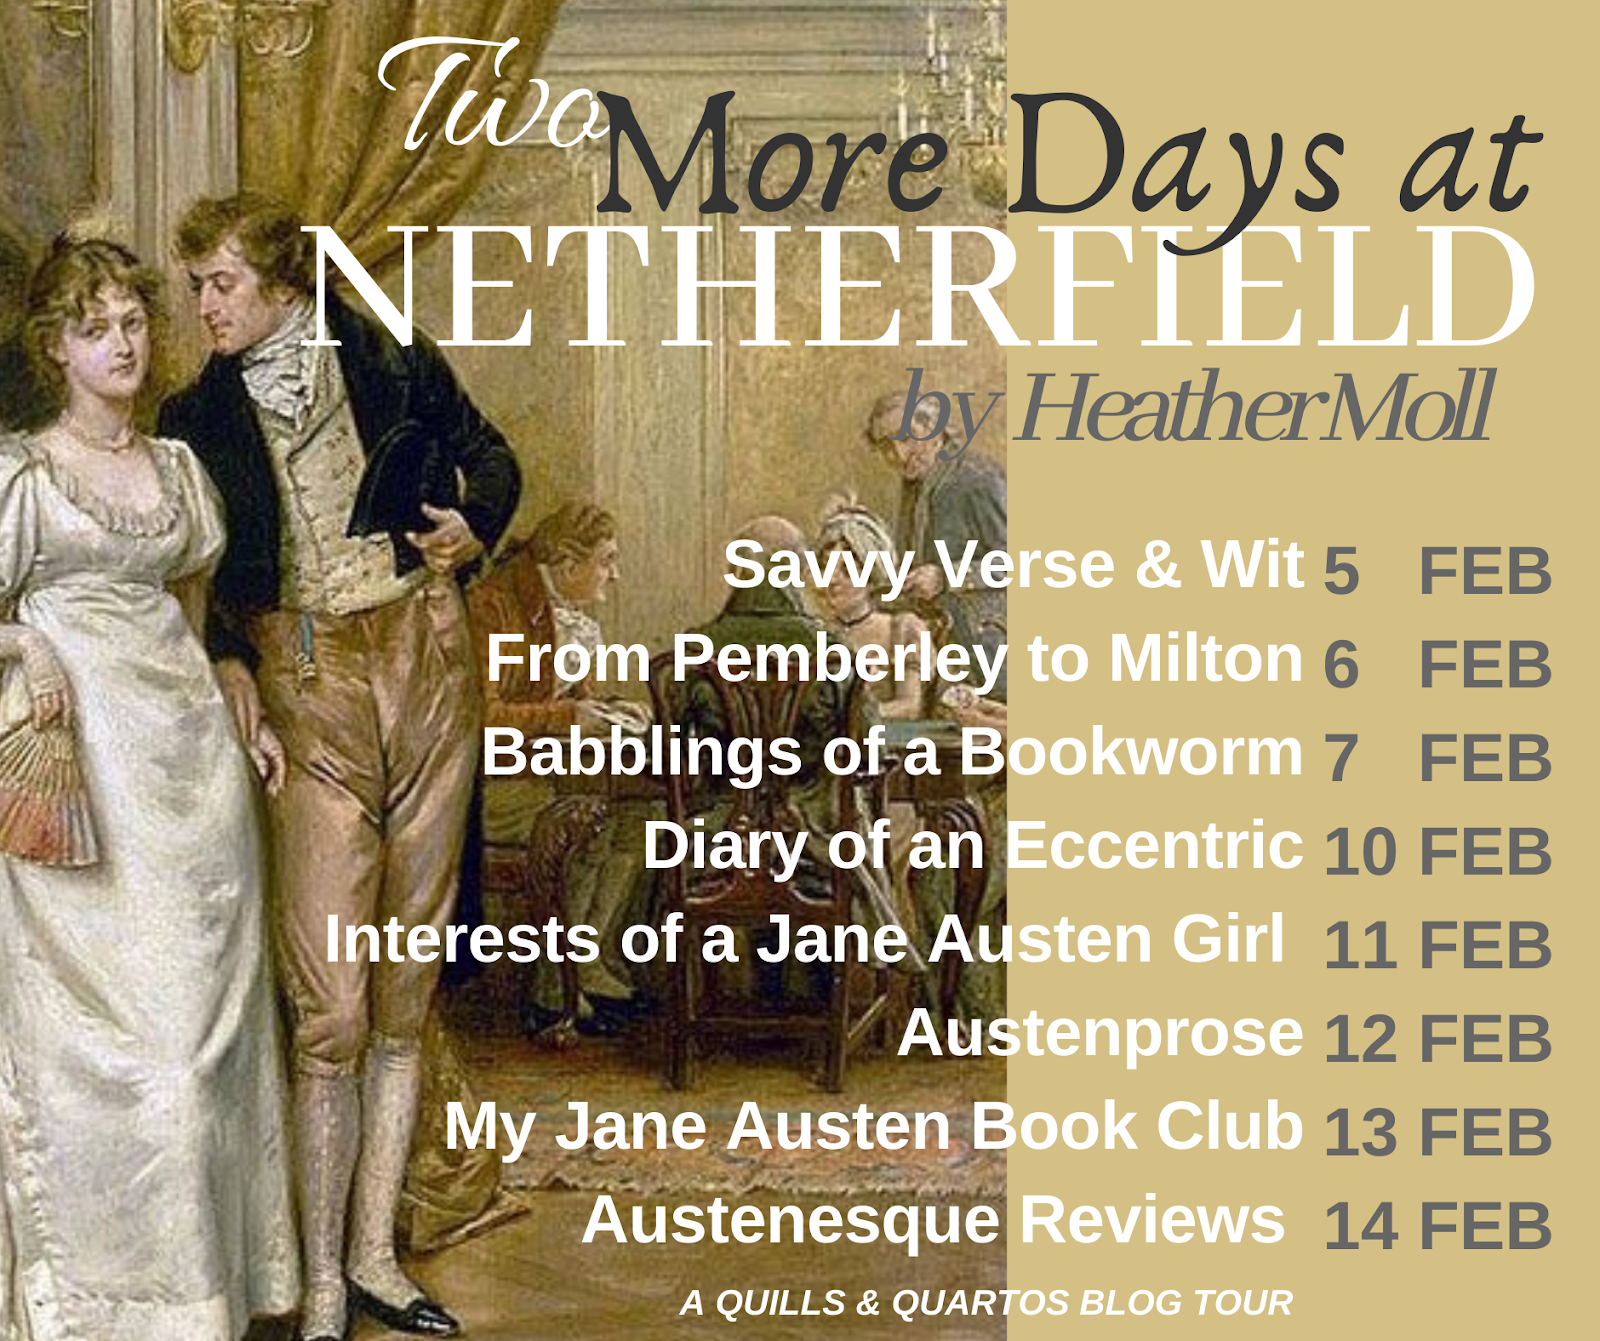 Two More Days at Netherfield by Heather Moll